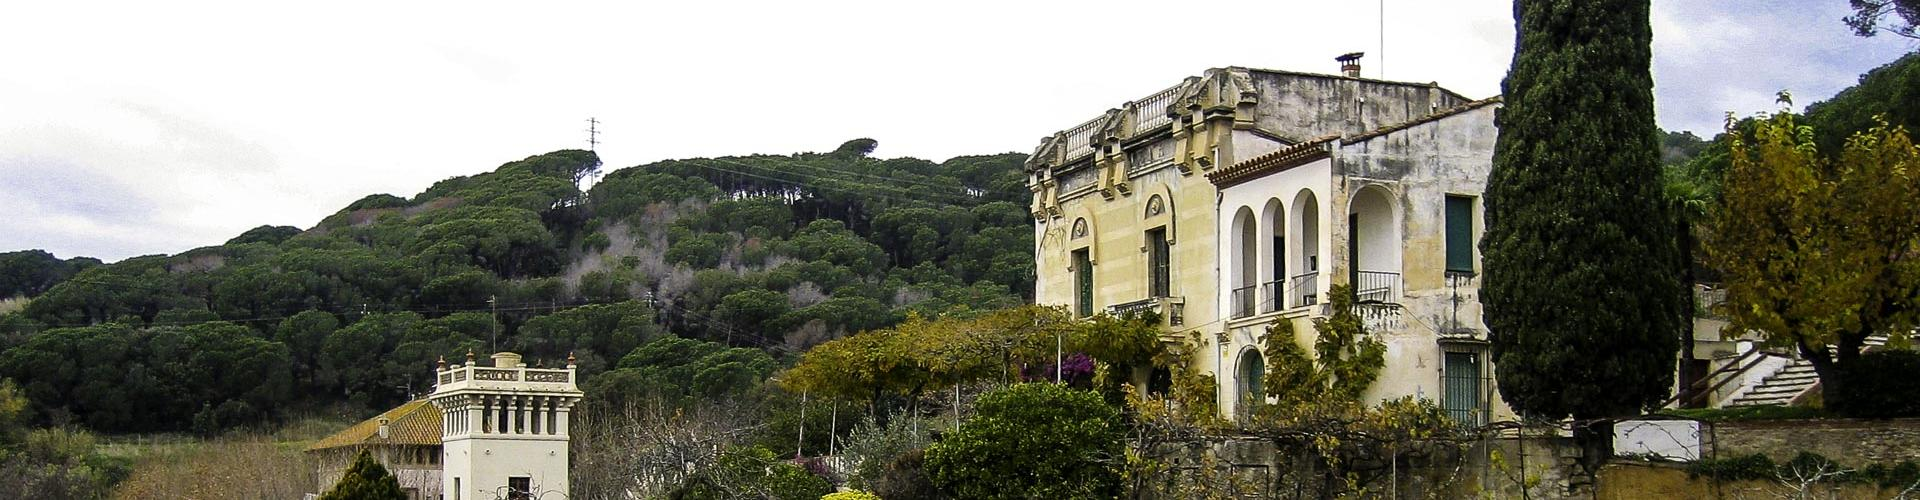 Can Gallina i Can Godai